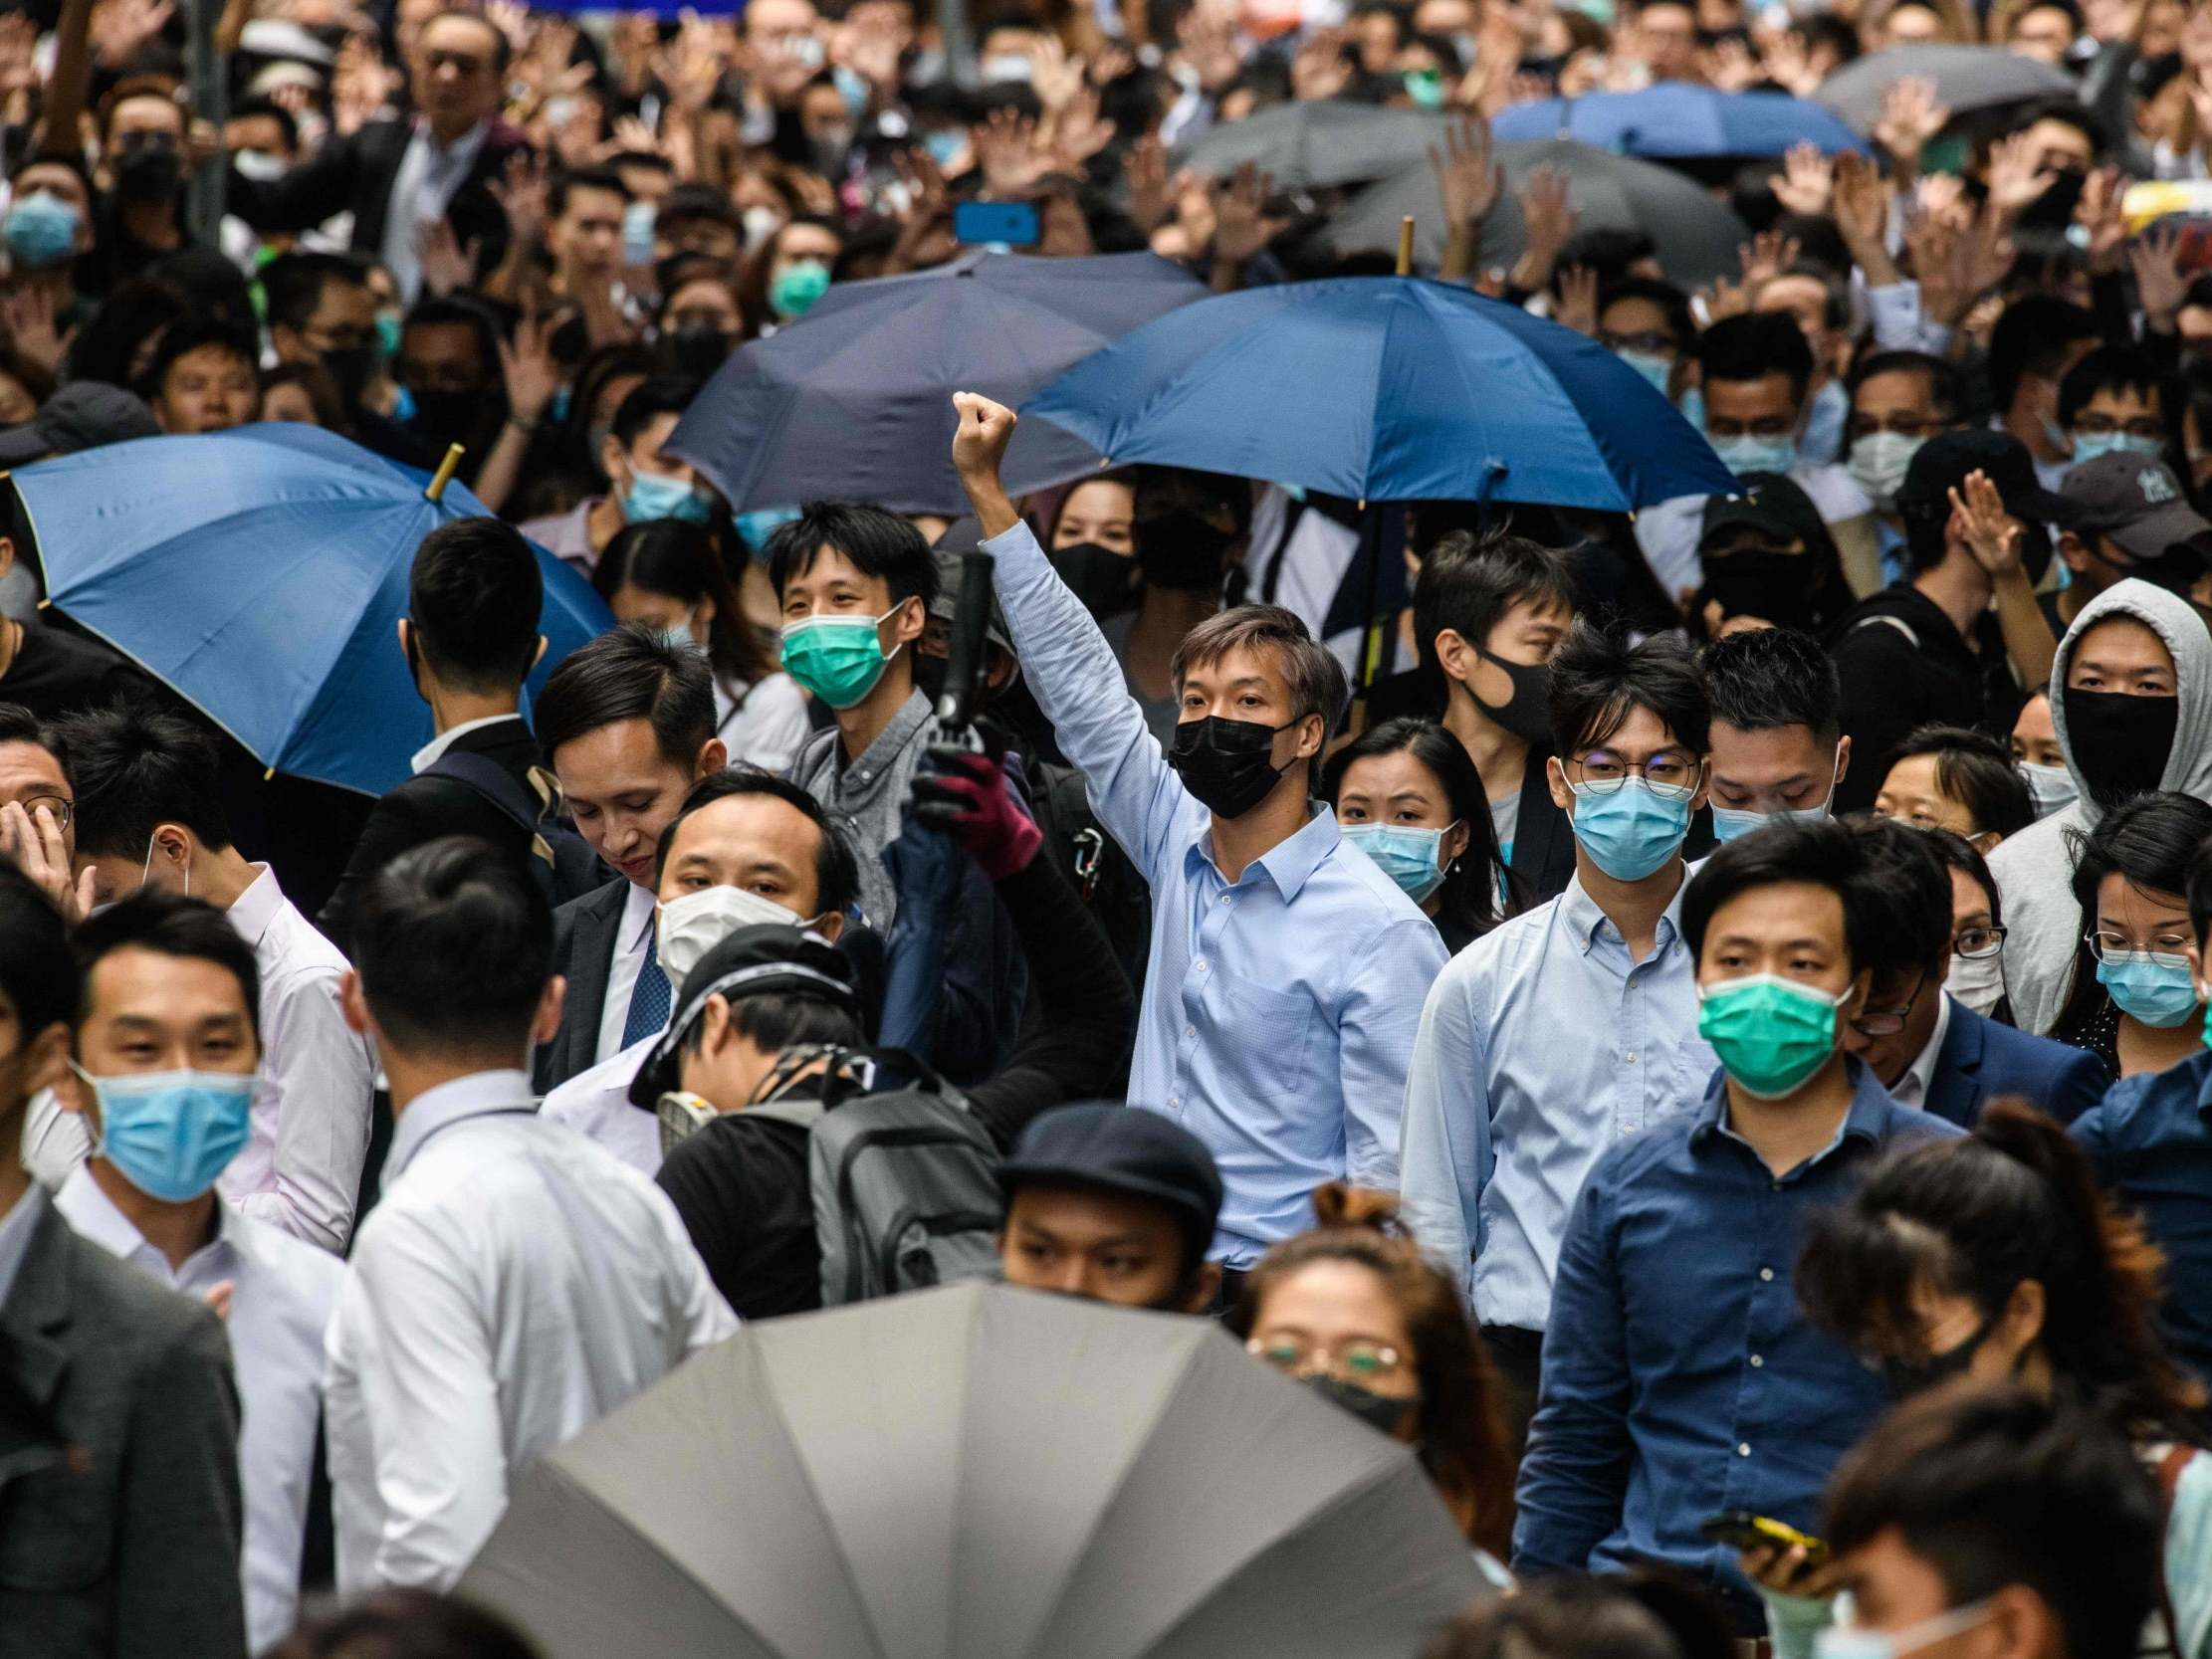 Hong Kong is trying impose Tiananmen by stealth – Carrie Lam herself is now the 'enemy of the people'